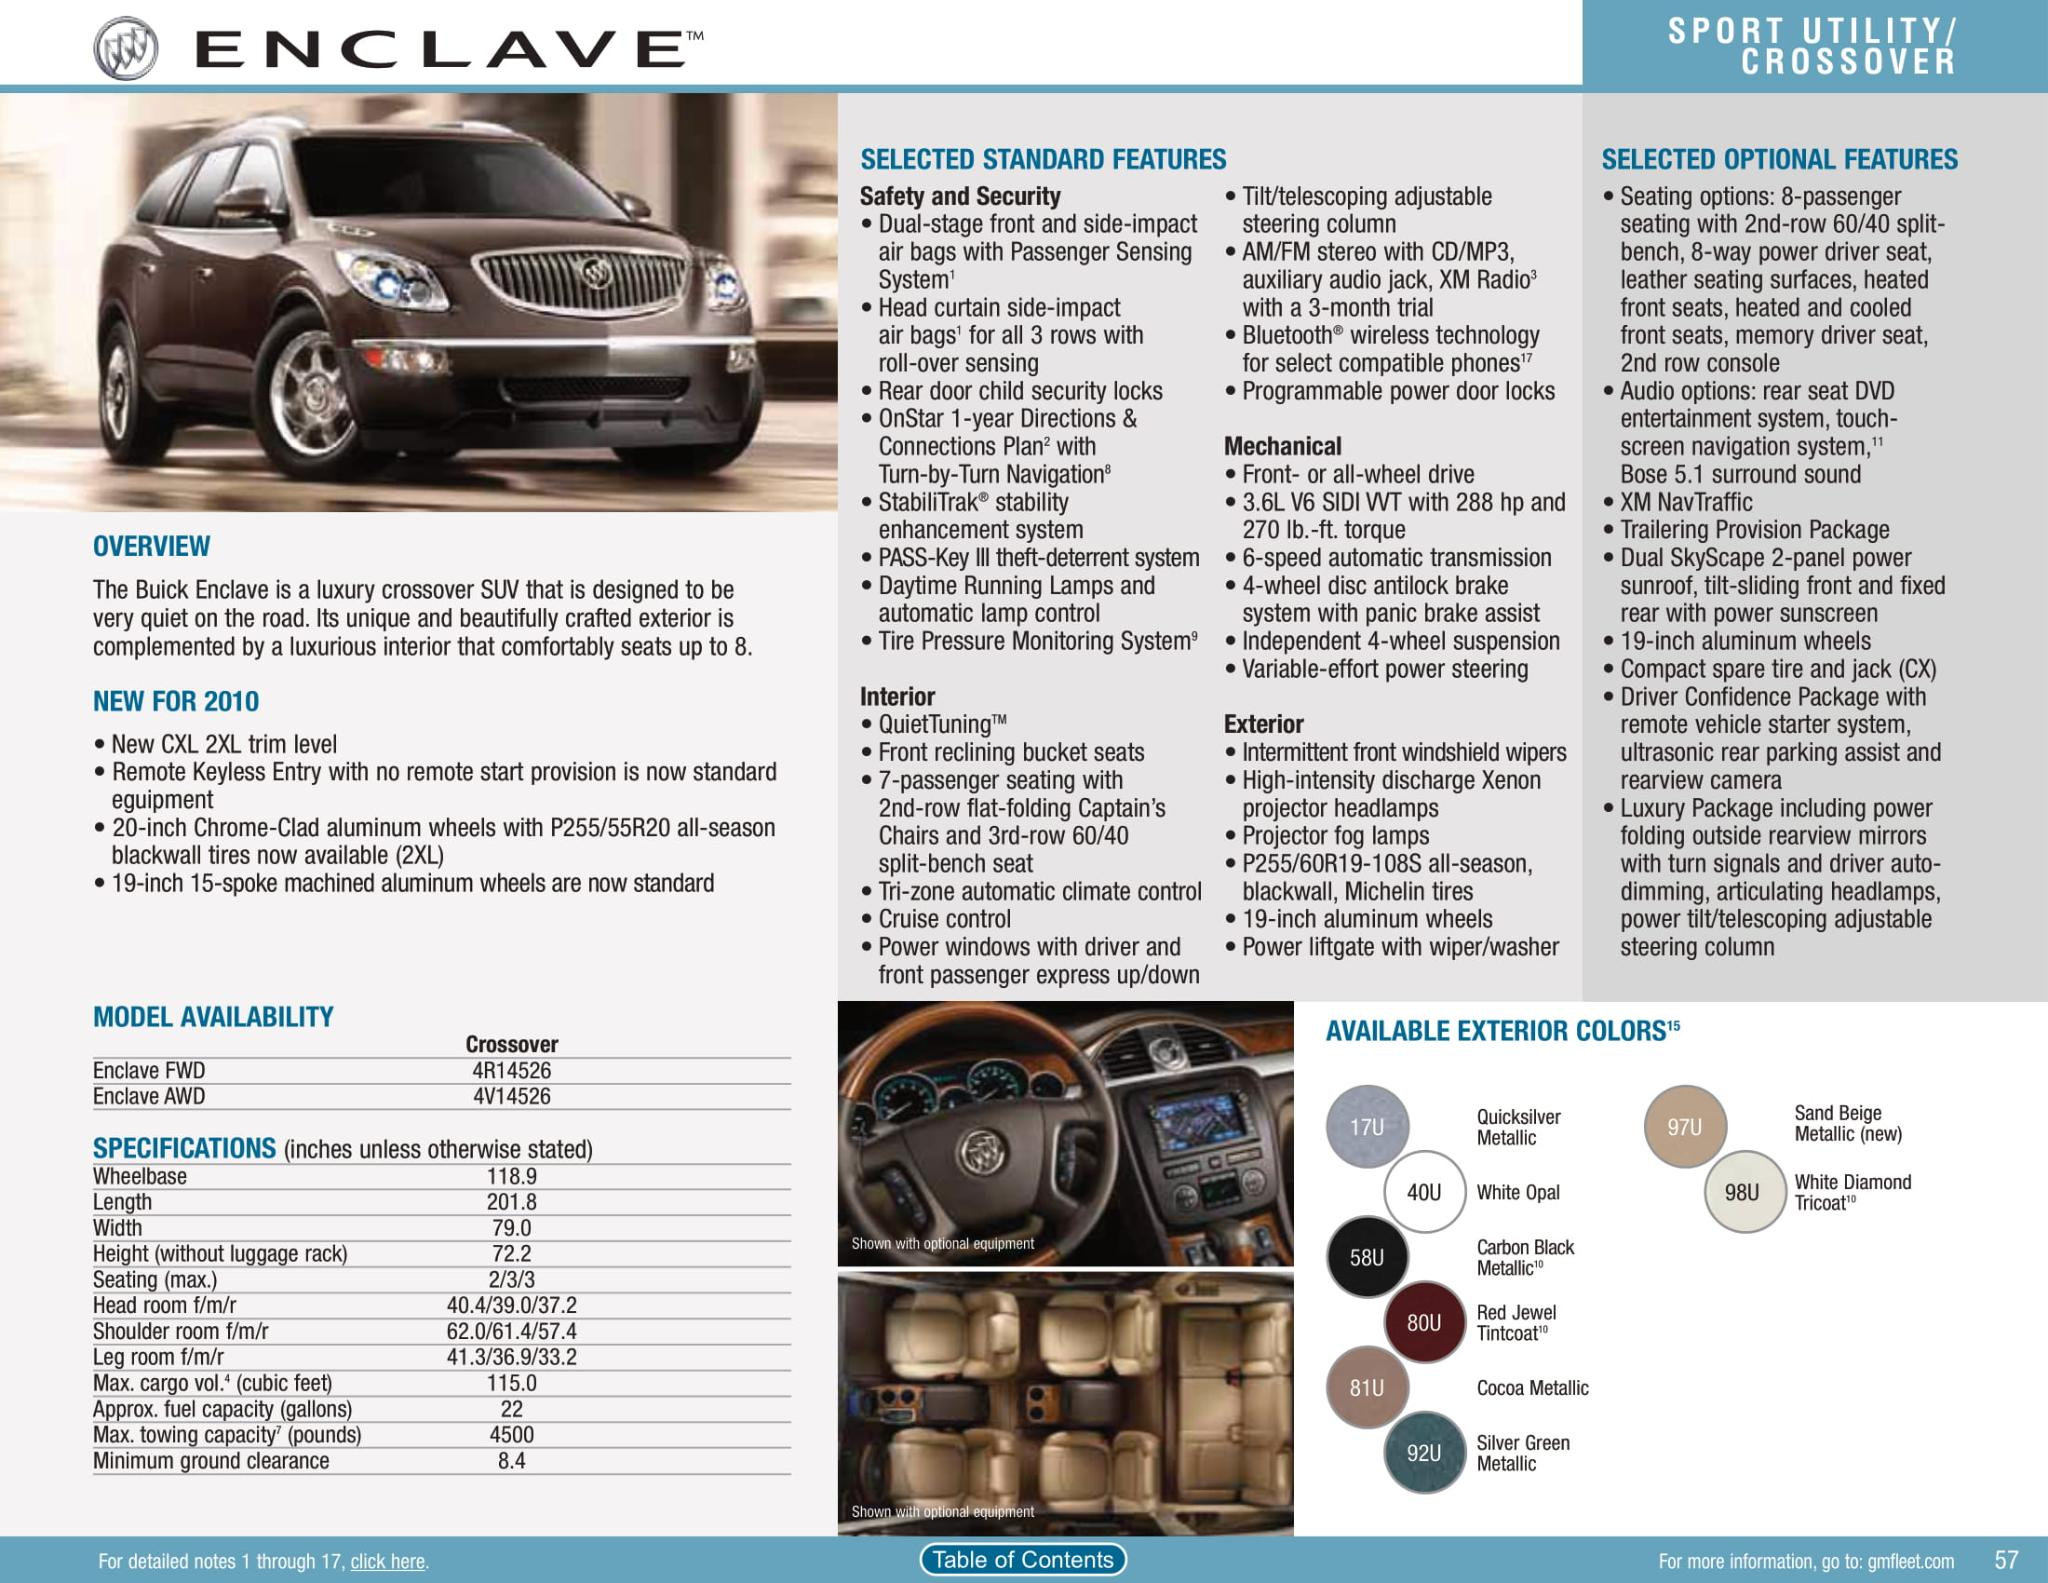 exterior colors options used on enclave in 2010